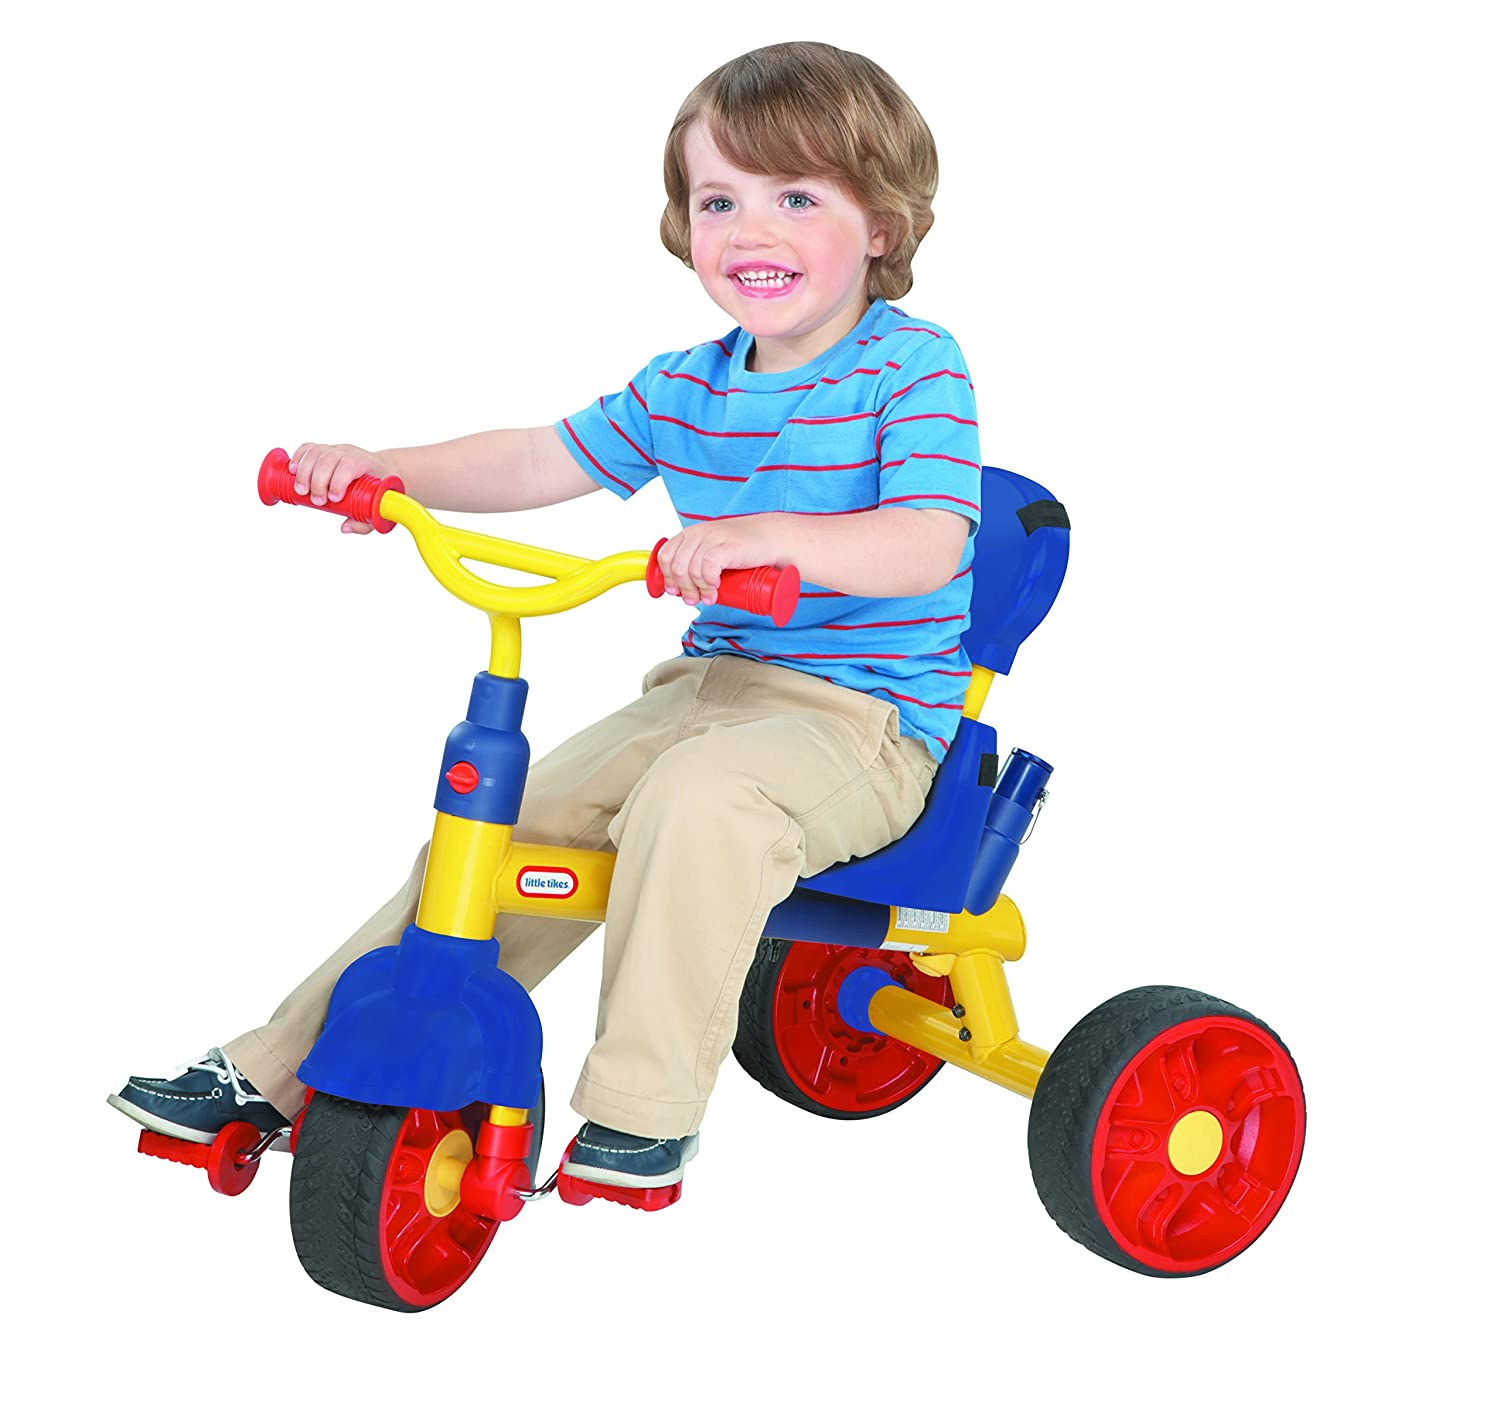 Little Tikes 3-in-1 Learn to Pedal Trike: Amazon.co.uk: Toys & Games